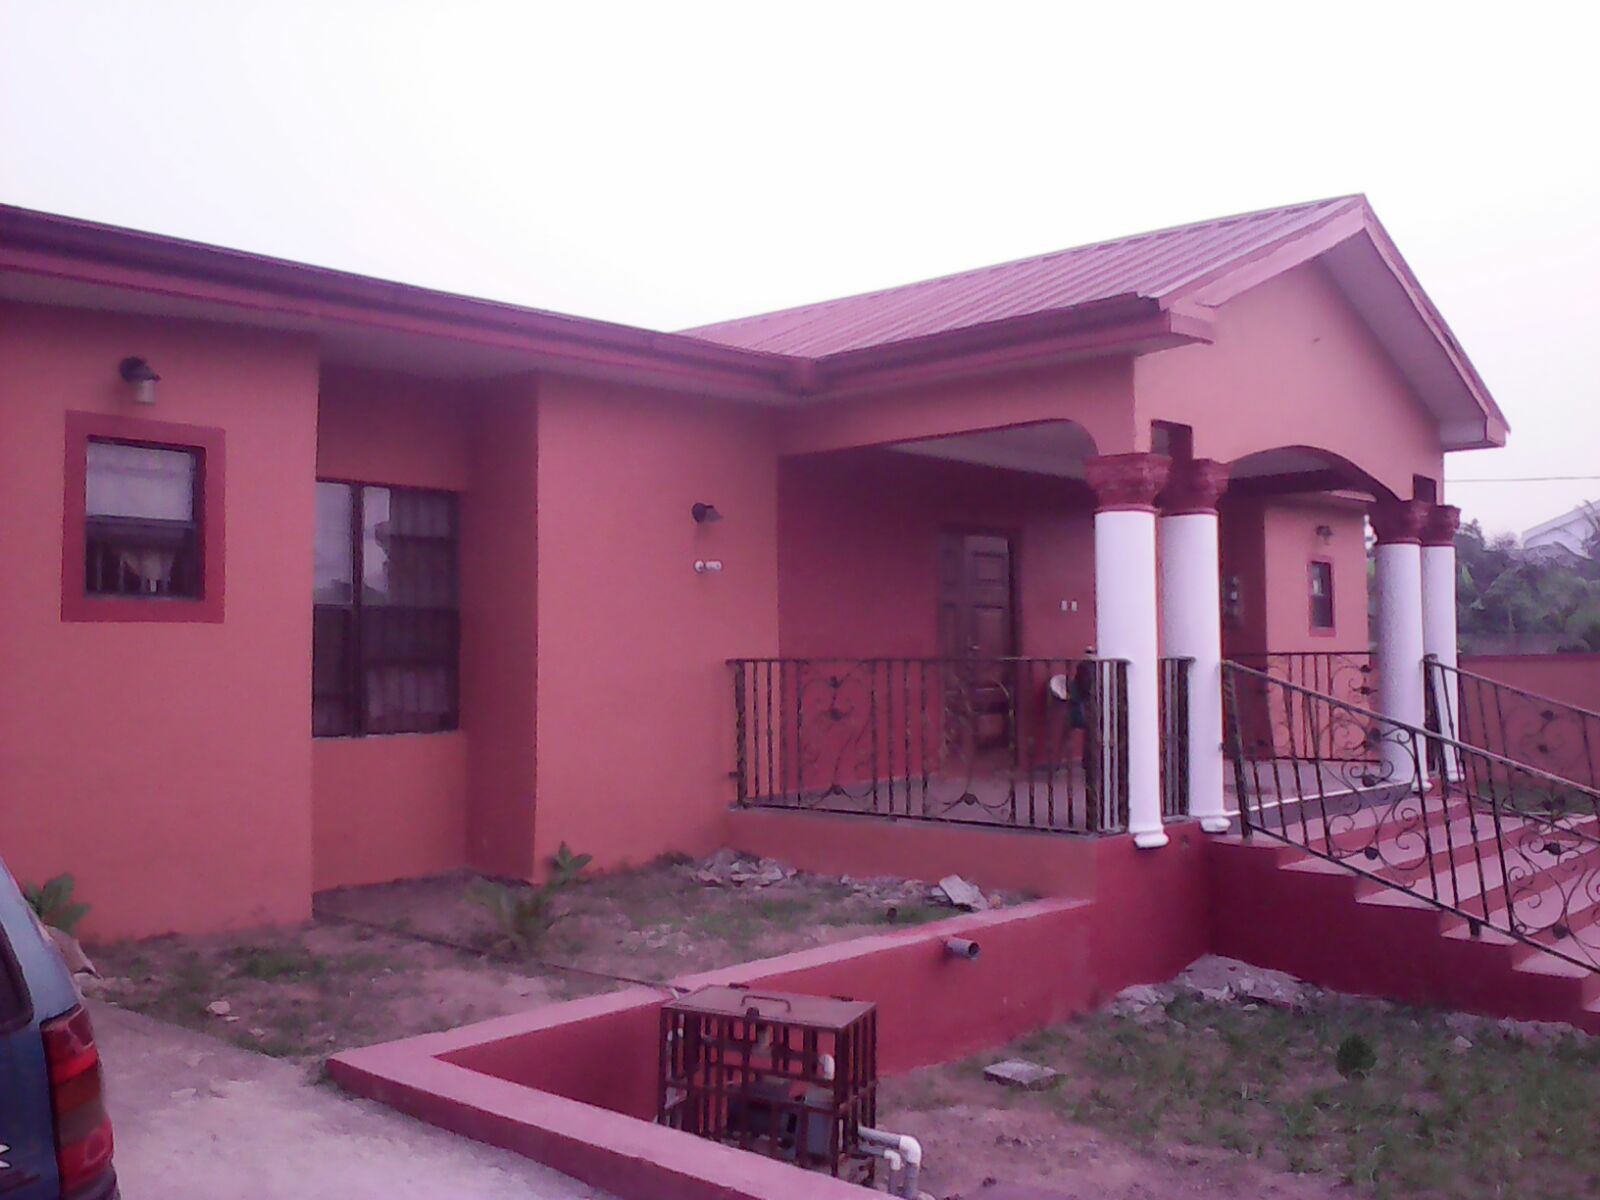 4 Bedrooms House For Sale In Kumasi Houses For Sale Houses For Rent In Ghana